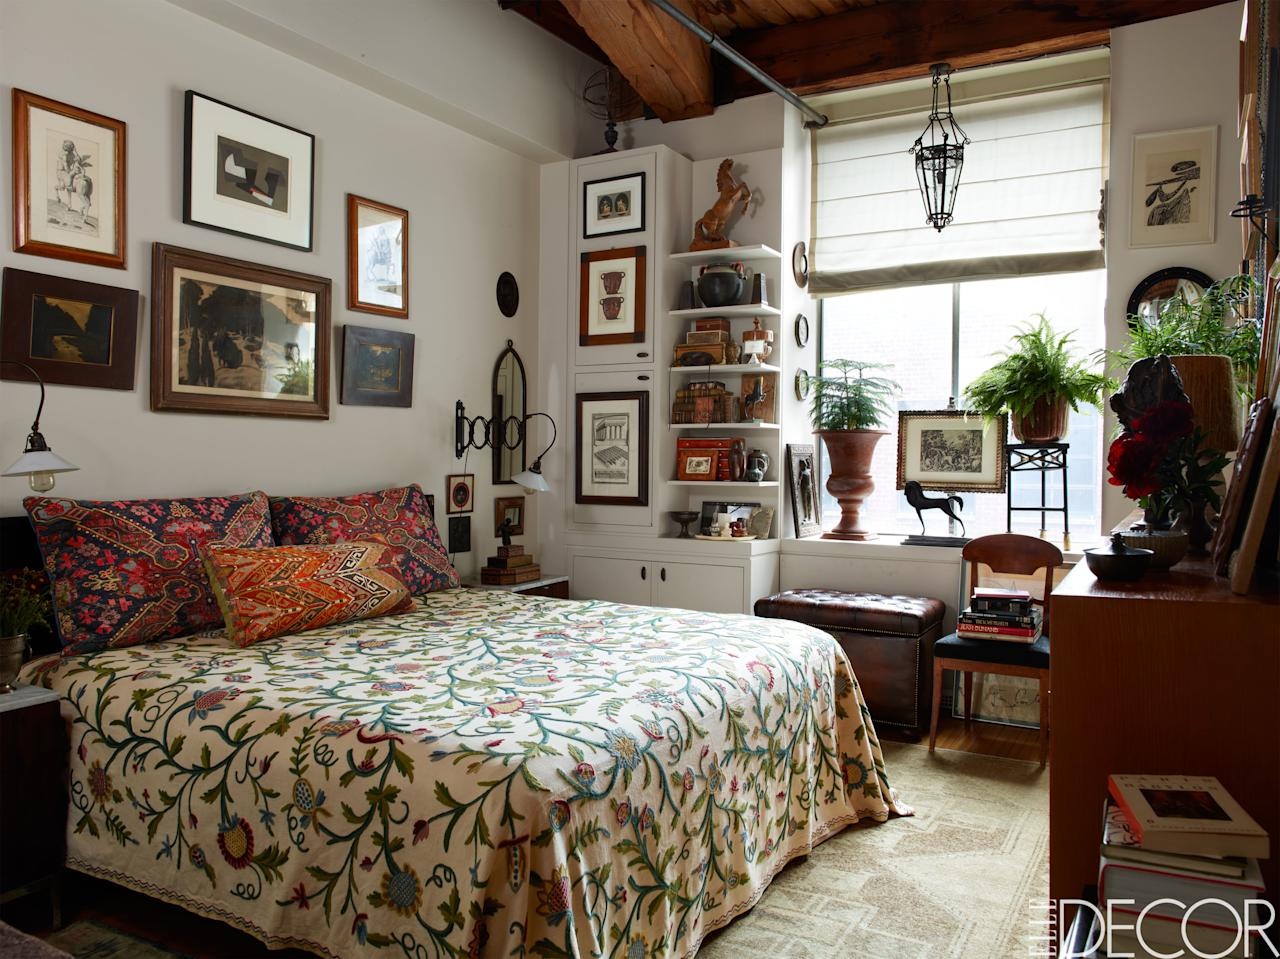 20 ways to make a big statement in a small bedroom